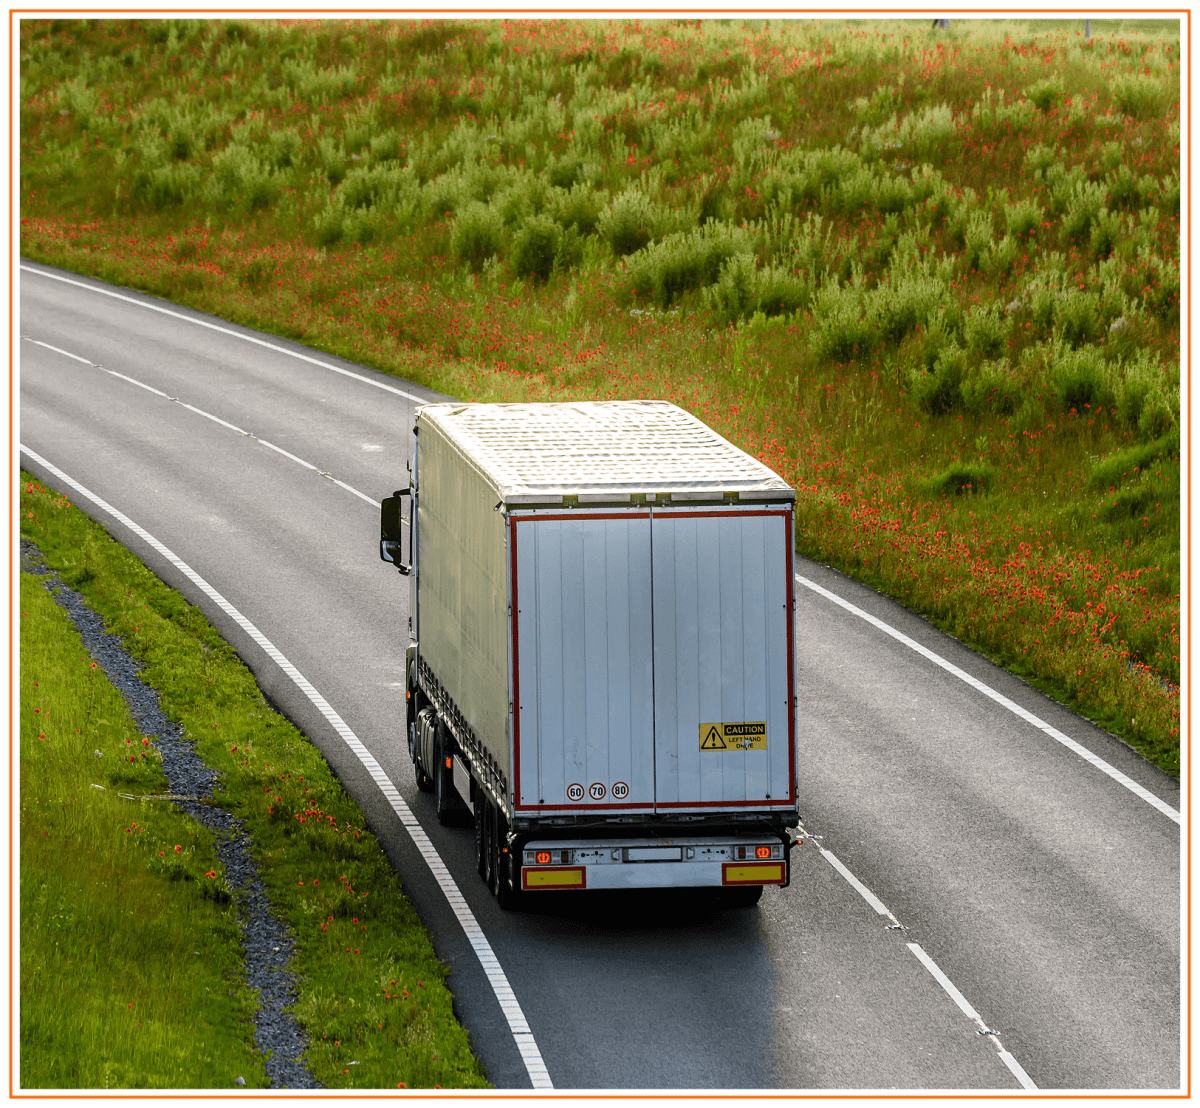 https://i2.wp.com/haultech.co.uk/wp-content/uploads/2021/08/UK-Government-Announce-Package-of-Measures-to-Support-Hauliers.jpg.png?fit=1200%2C1108&ssl=1